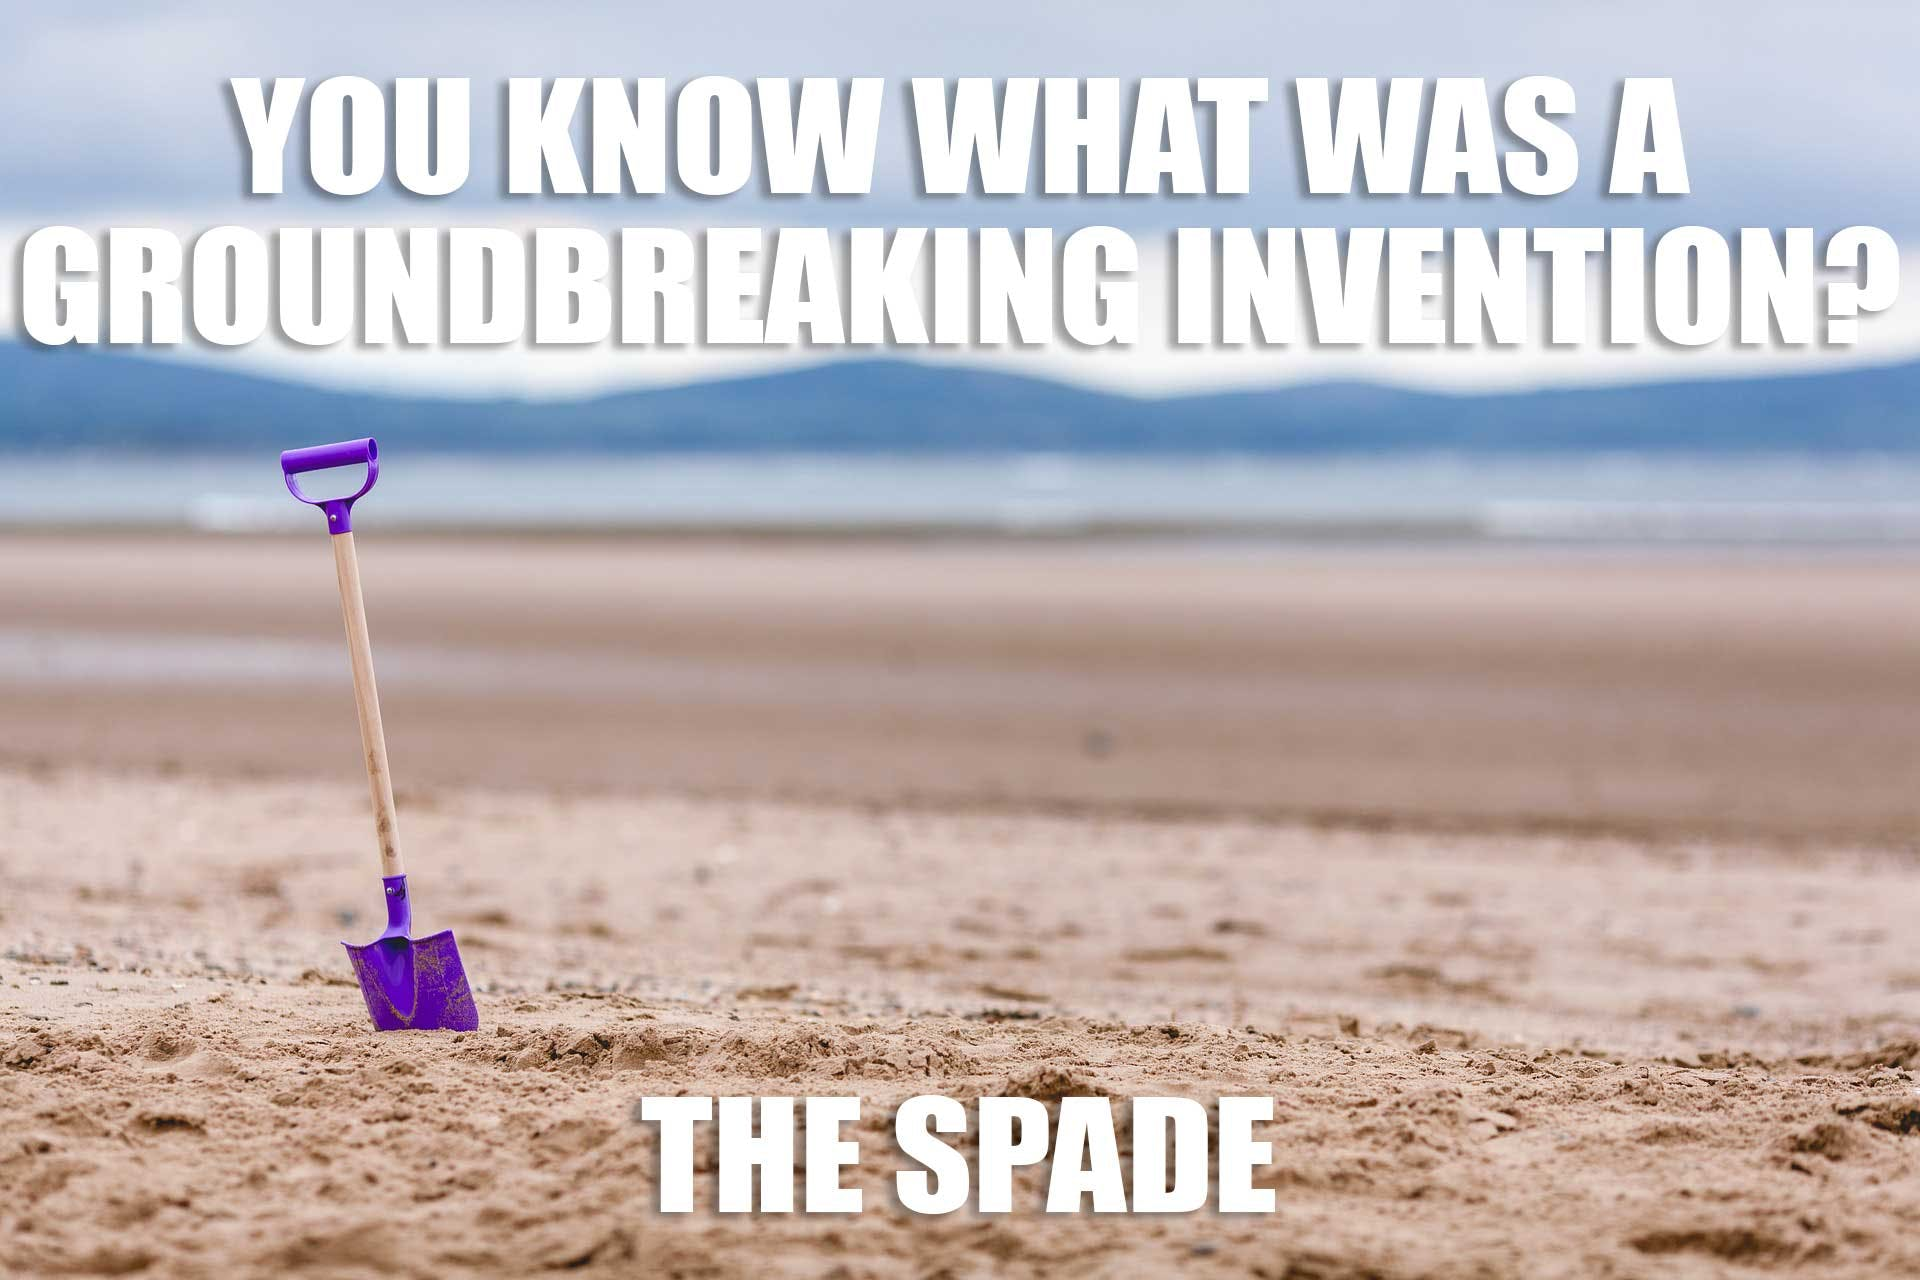 You know what was a groundbreaking invention?